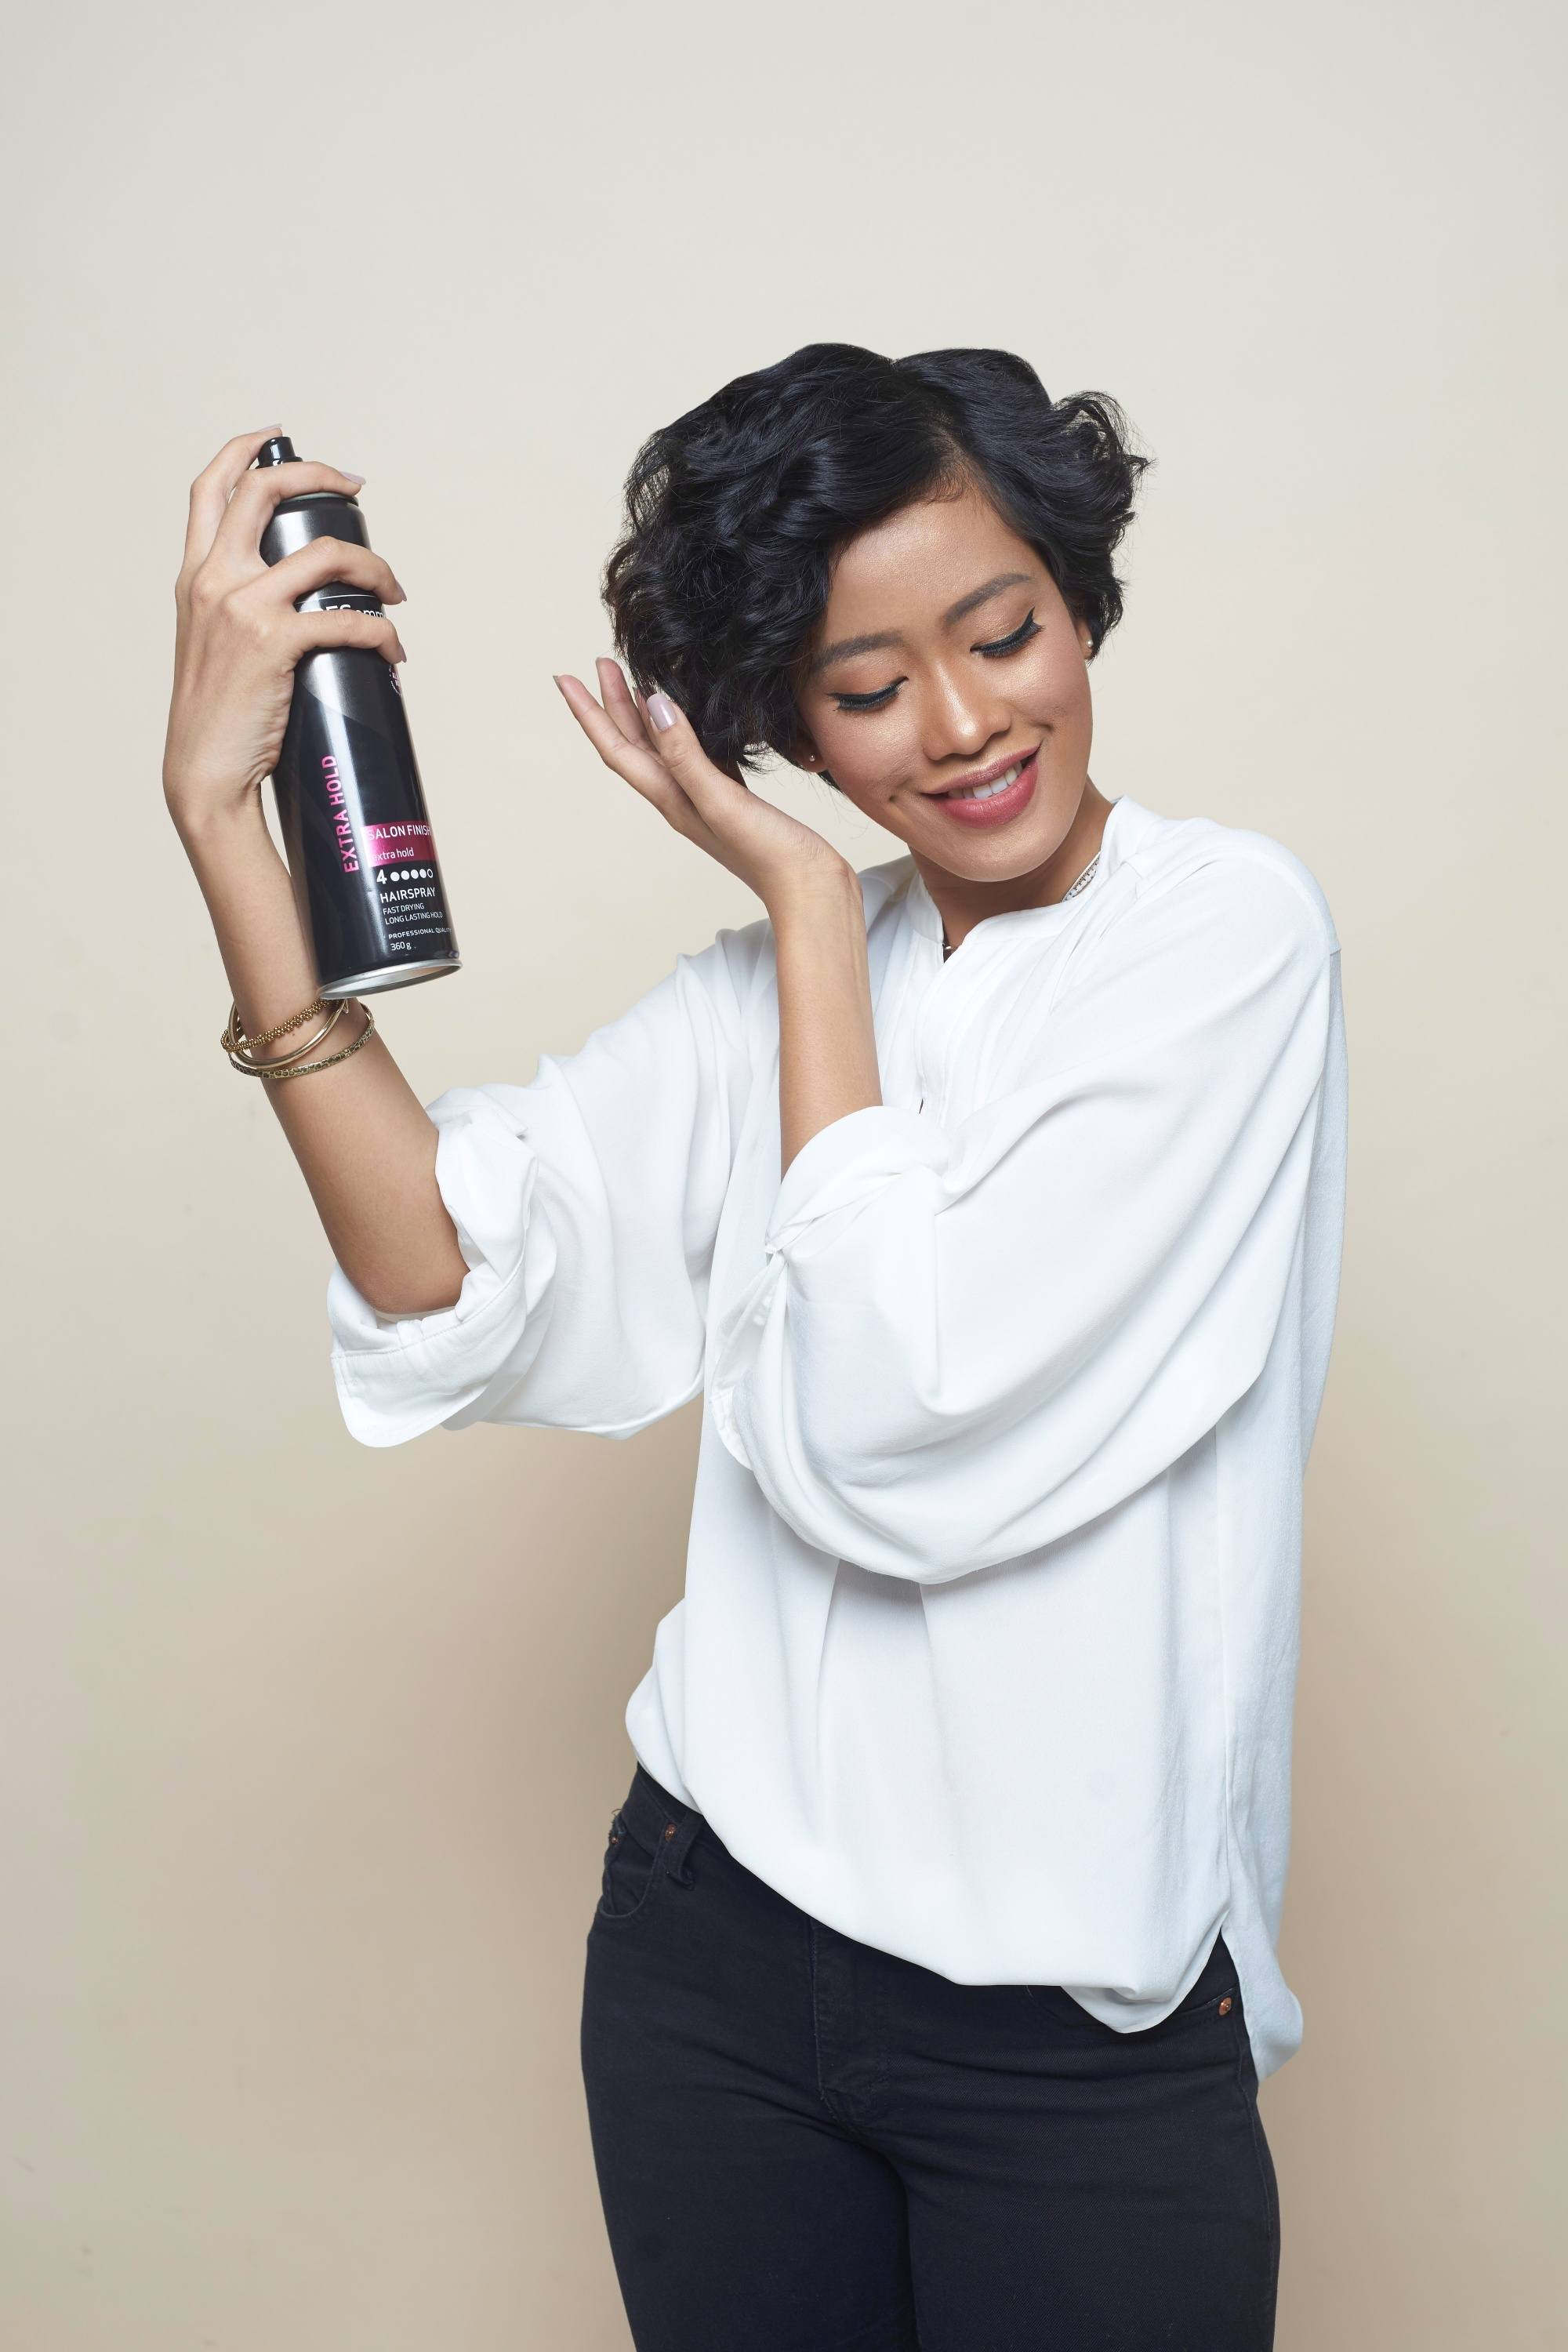 Hair spray guide: Asian woman spraying on her short curly hair